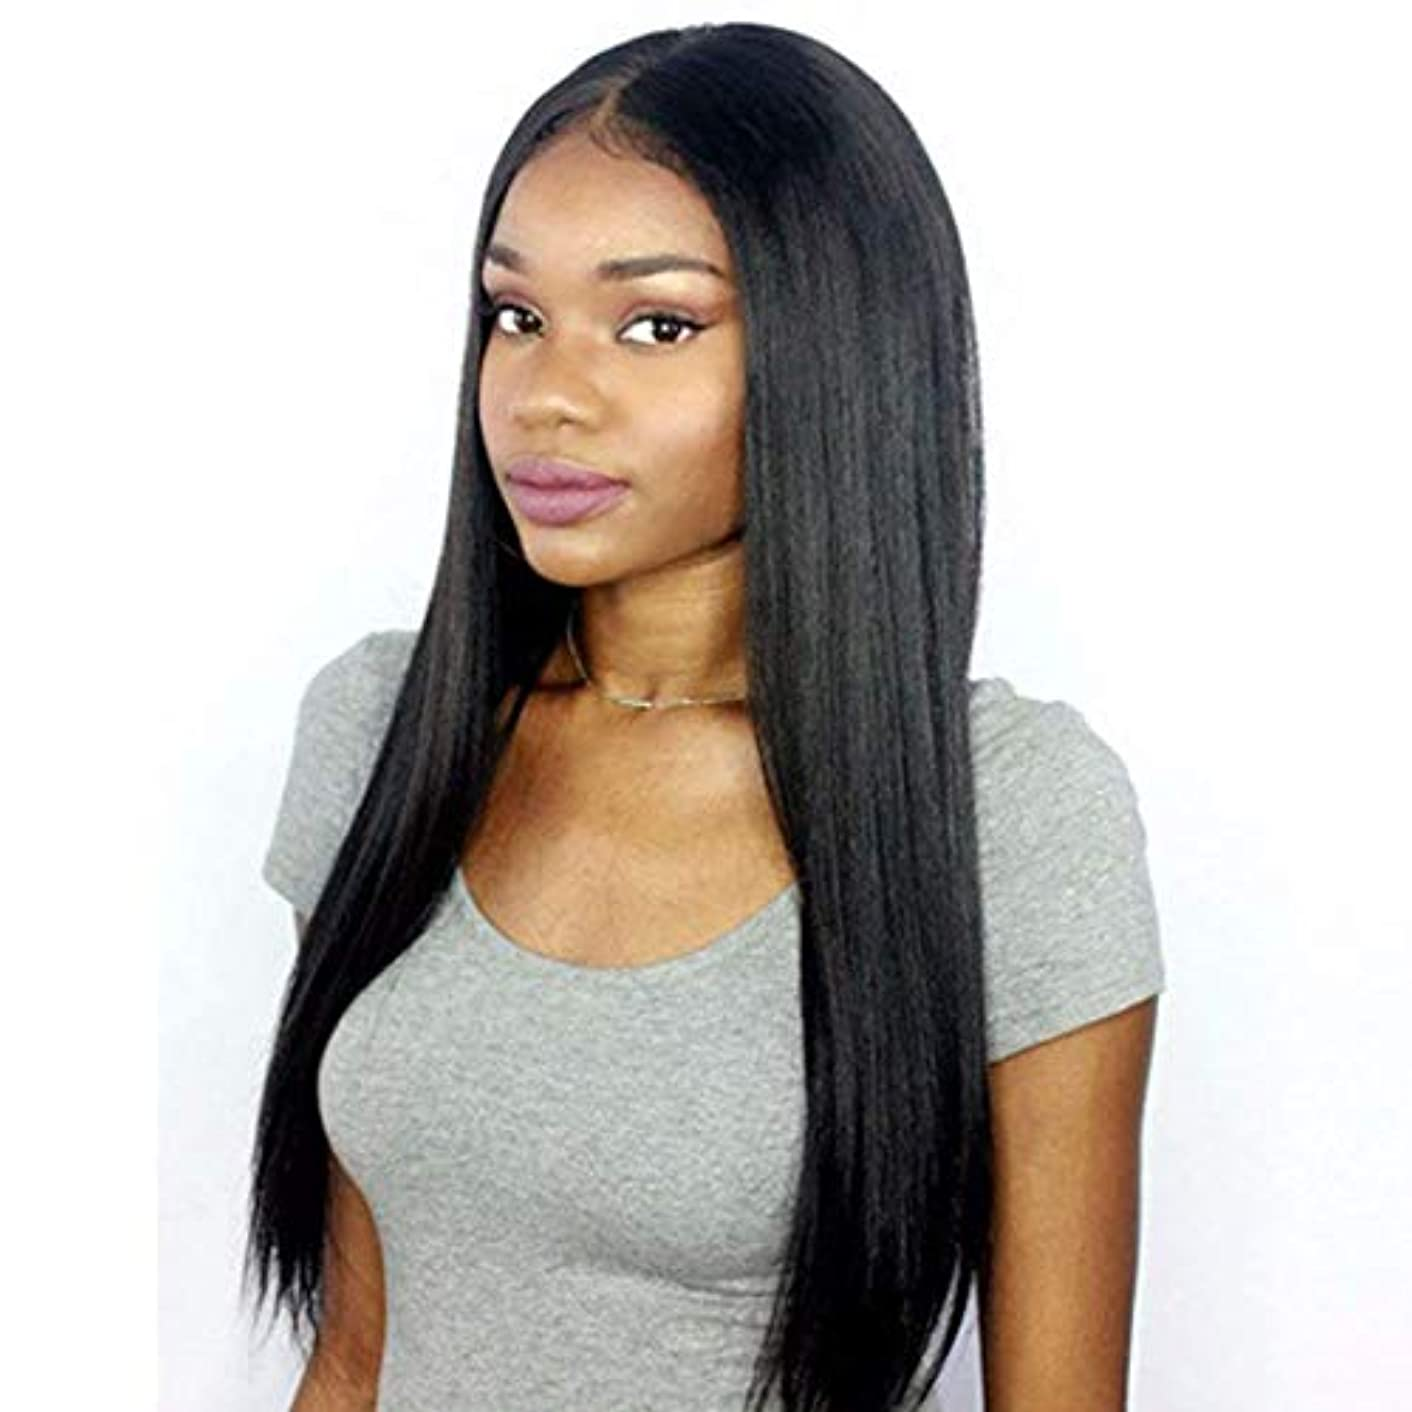 Premier 360 Lace Frontal Wig Light Yaki Straight Brazilian Remy Human Hair Wigs for Women 150% Density 360 Lace Front Wigs Pre Plucked Hairline with Baby Hair 14 inch Natural Color free part